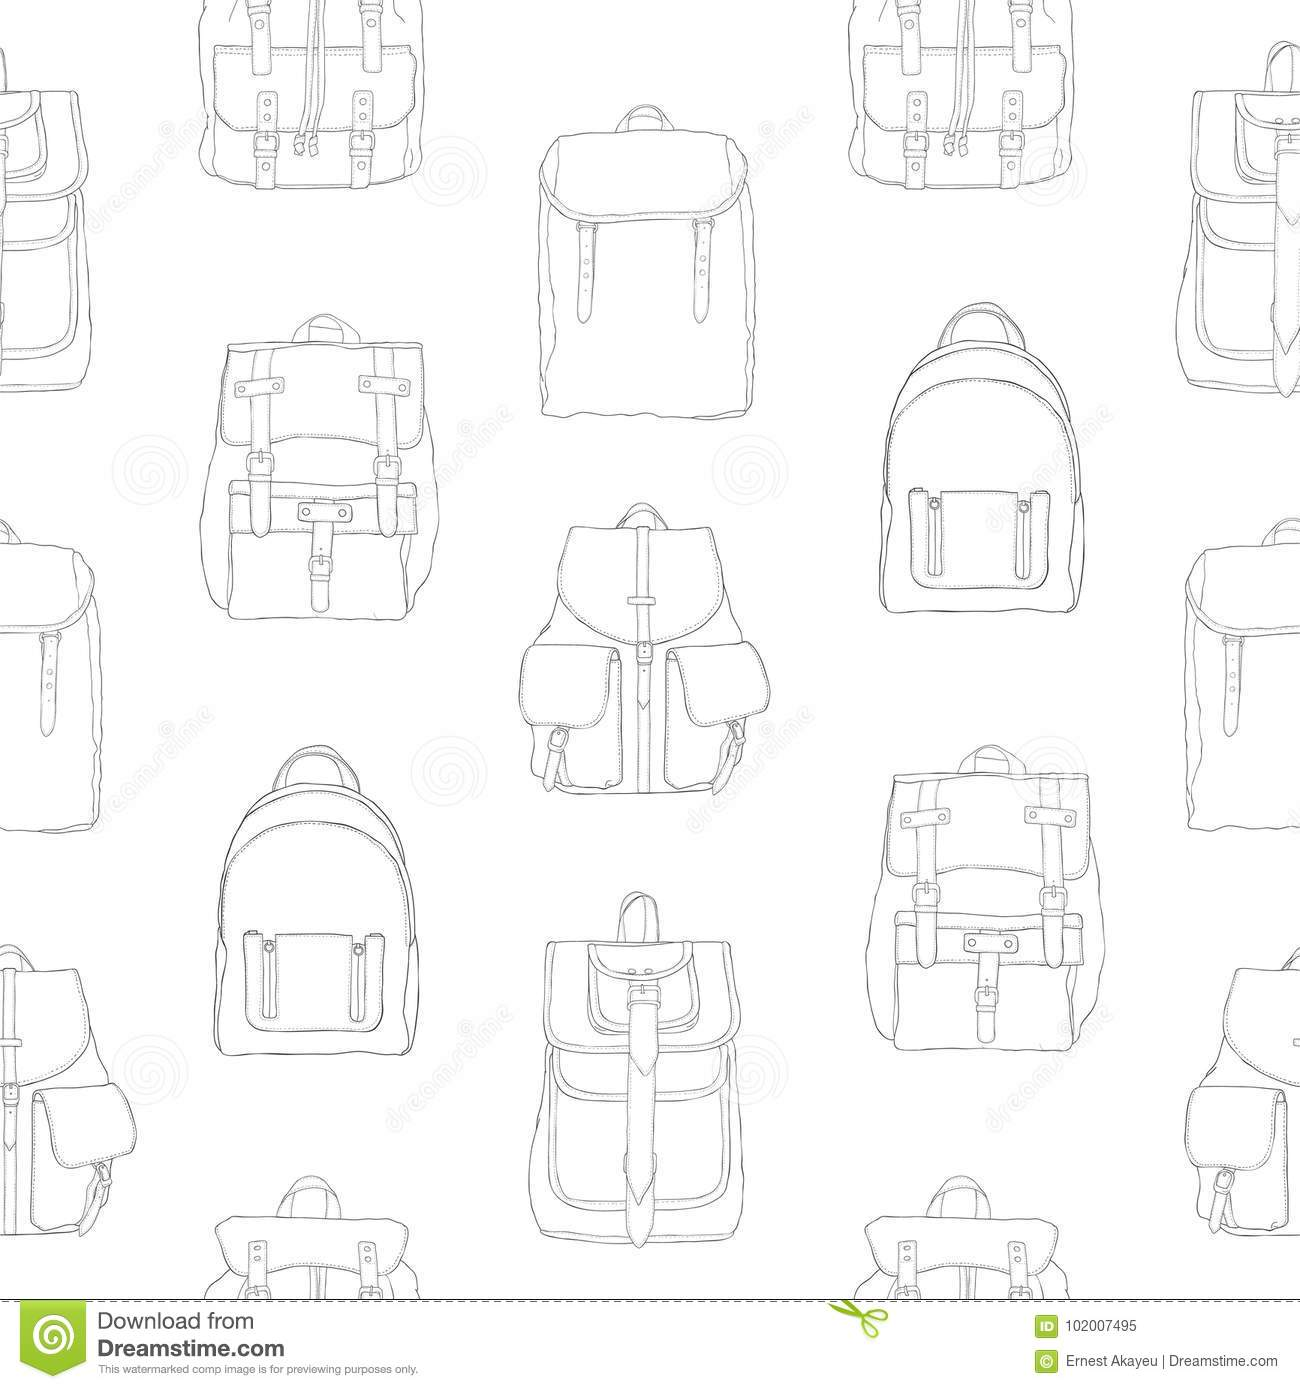 Monochrome seamless pattern with backpacks or rucksacks of different models. dd7dad8cc91f2